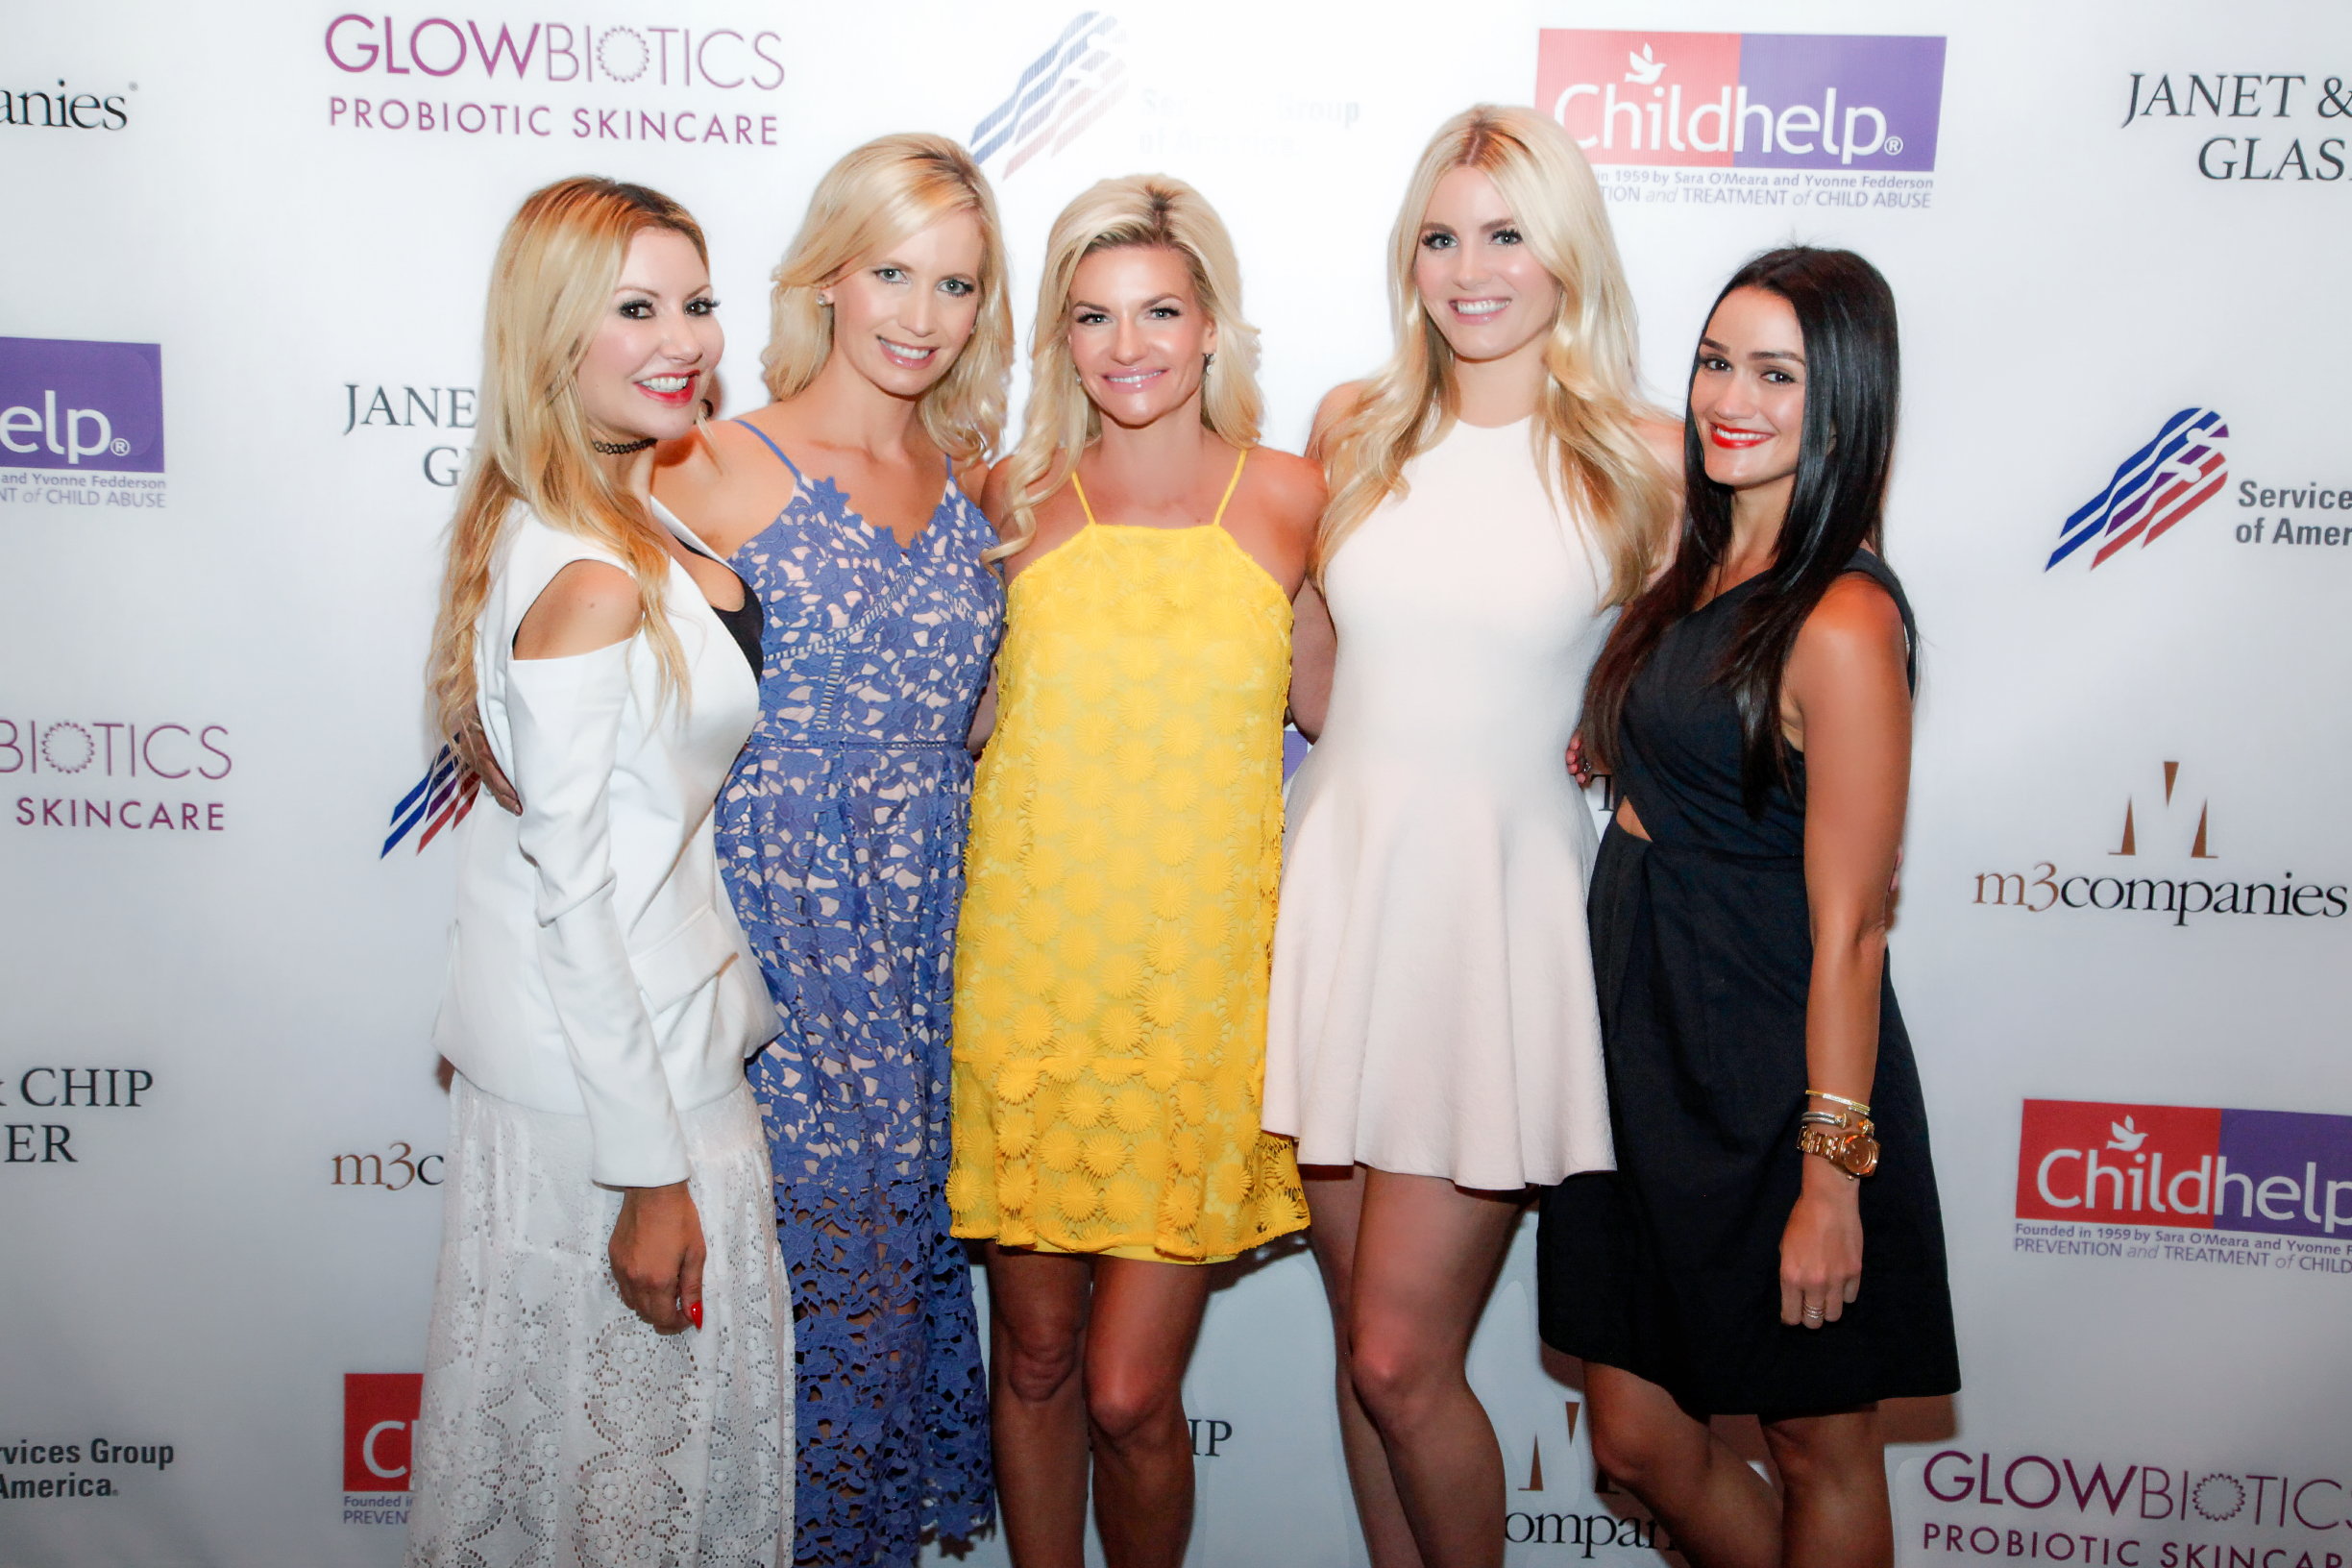 Carey Pena, Suzanne Bissett and The Bubbly Blonde at Childhelp Wings event